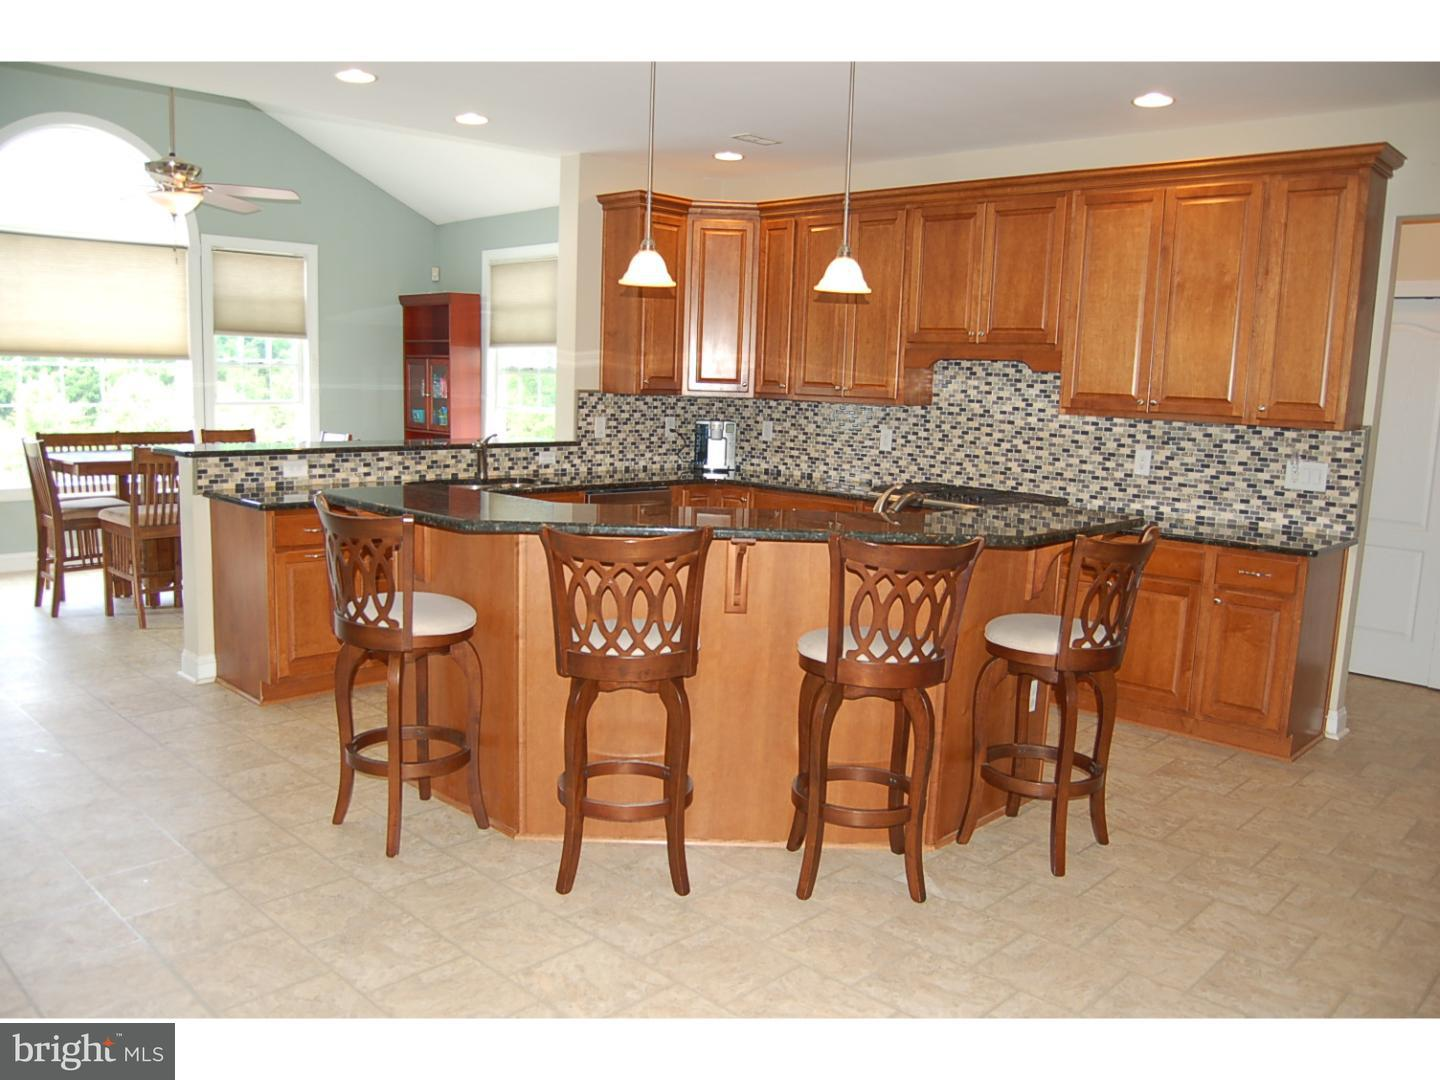 Single Family Home for Sale at 44 WAVERLY Drive Mansfield Township, New Jersey 08022 United States